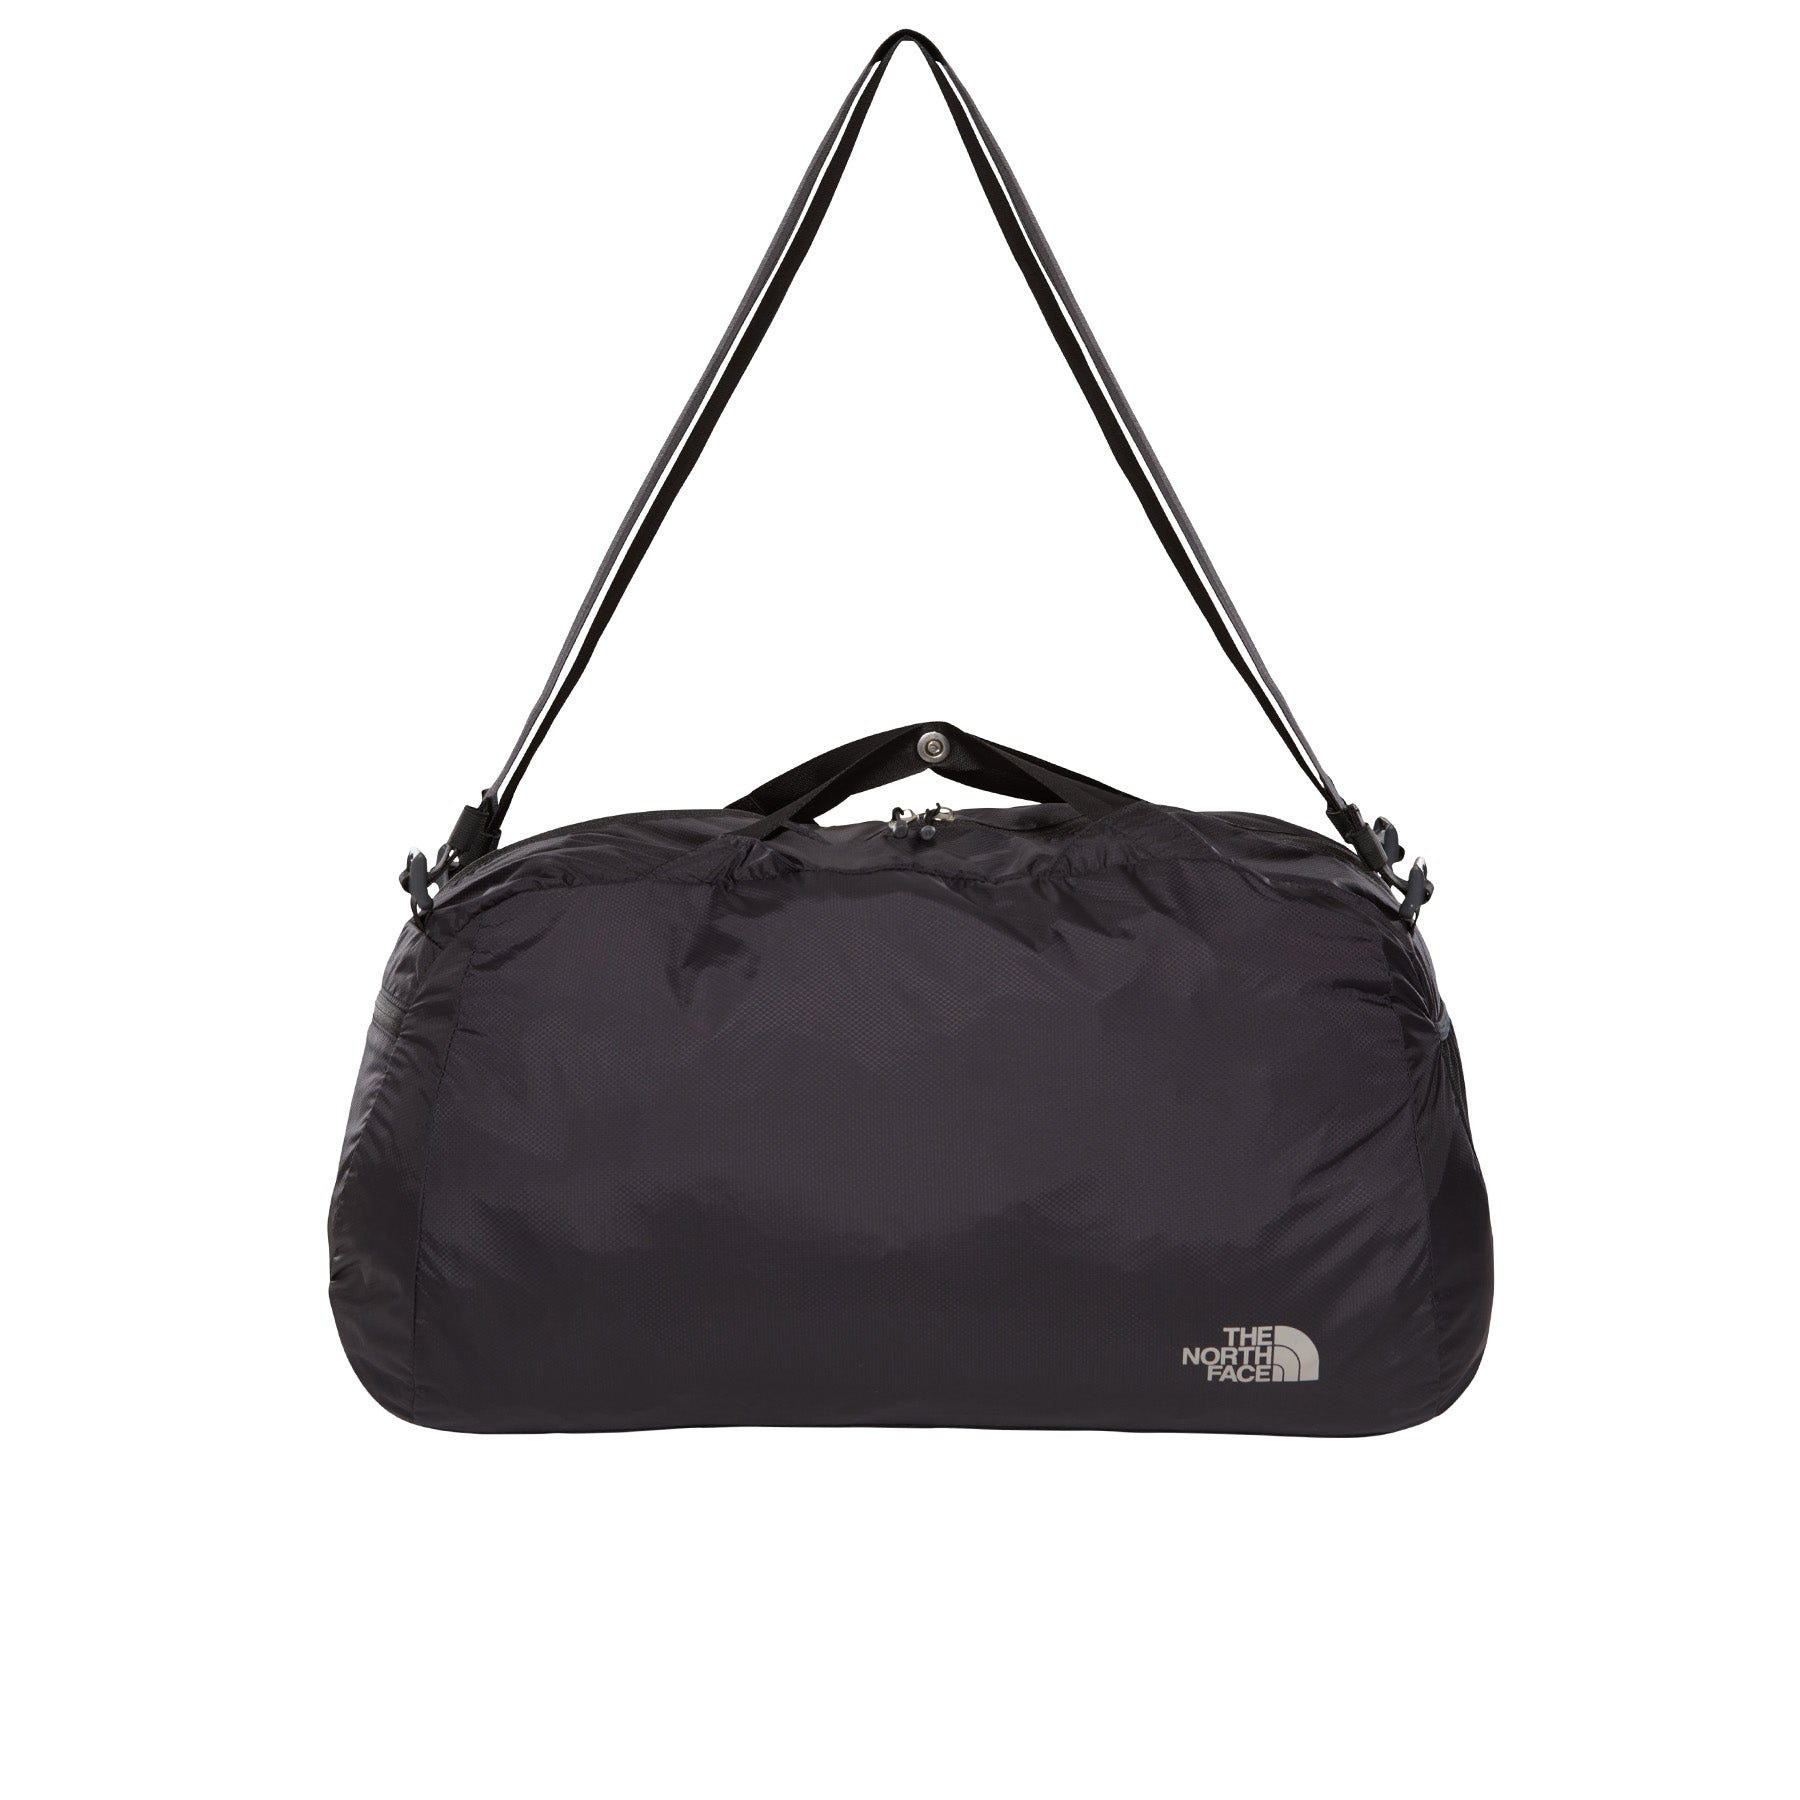 North Face Apex Medium Duffle Bag - Asphalt Grey TNF Black